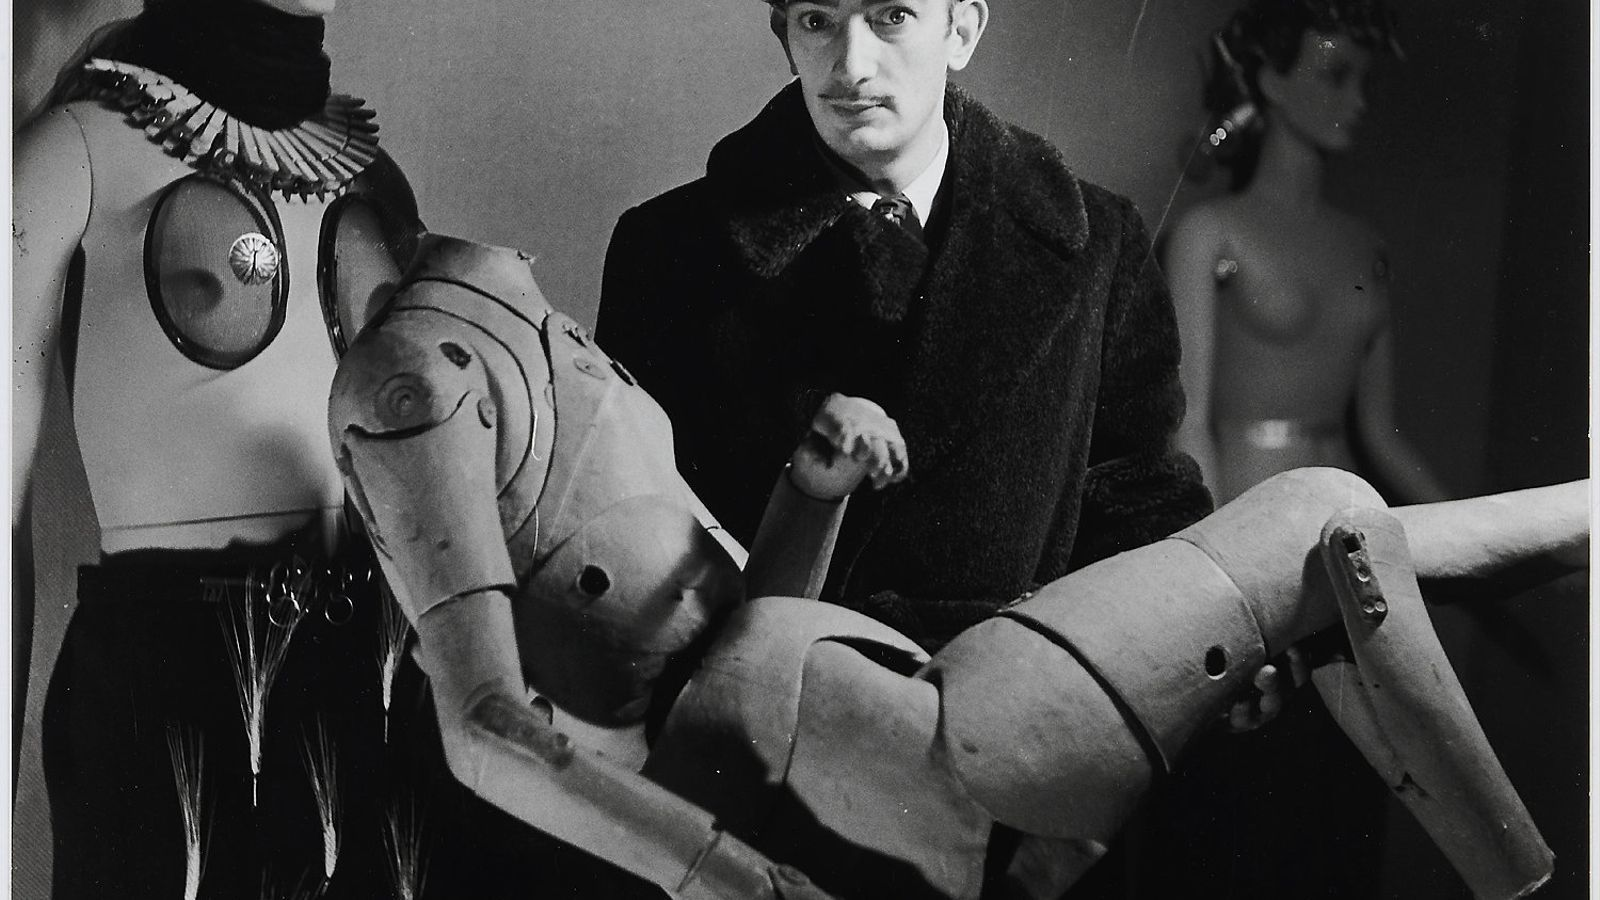 """Elles photographient Dali"" - Dali et son mannequin a l'Exposition Internationale du Surrealisme (París, 1938). DENISE BELLON"